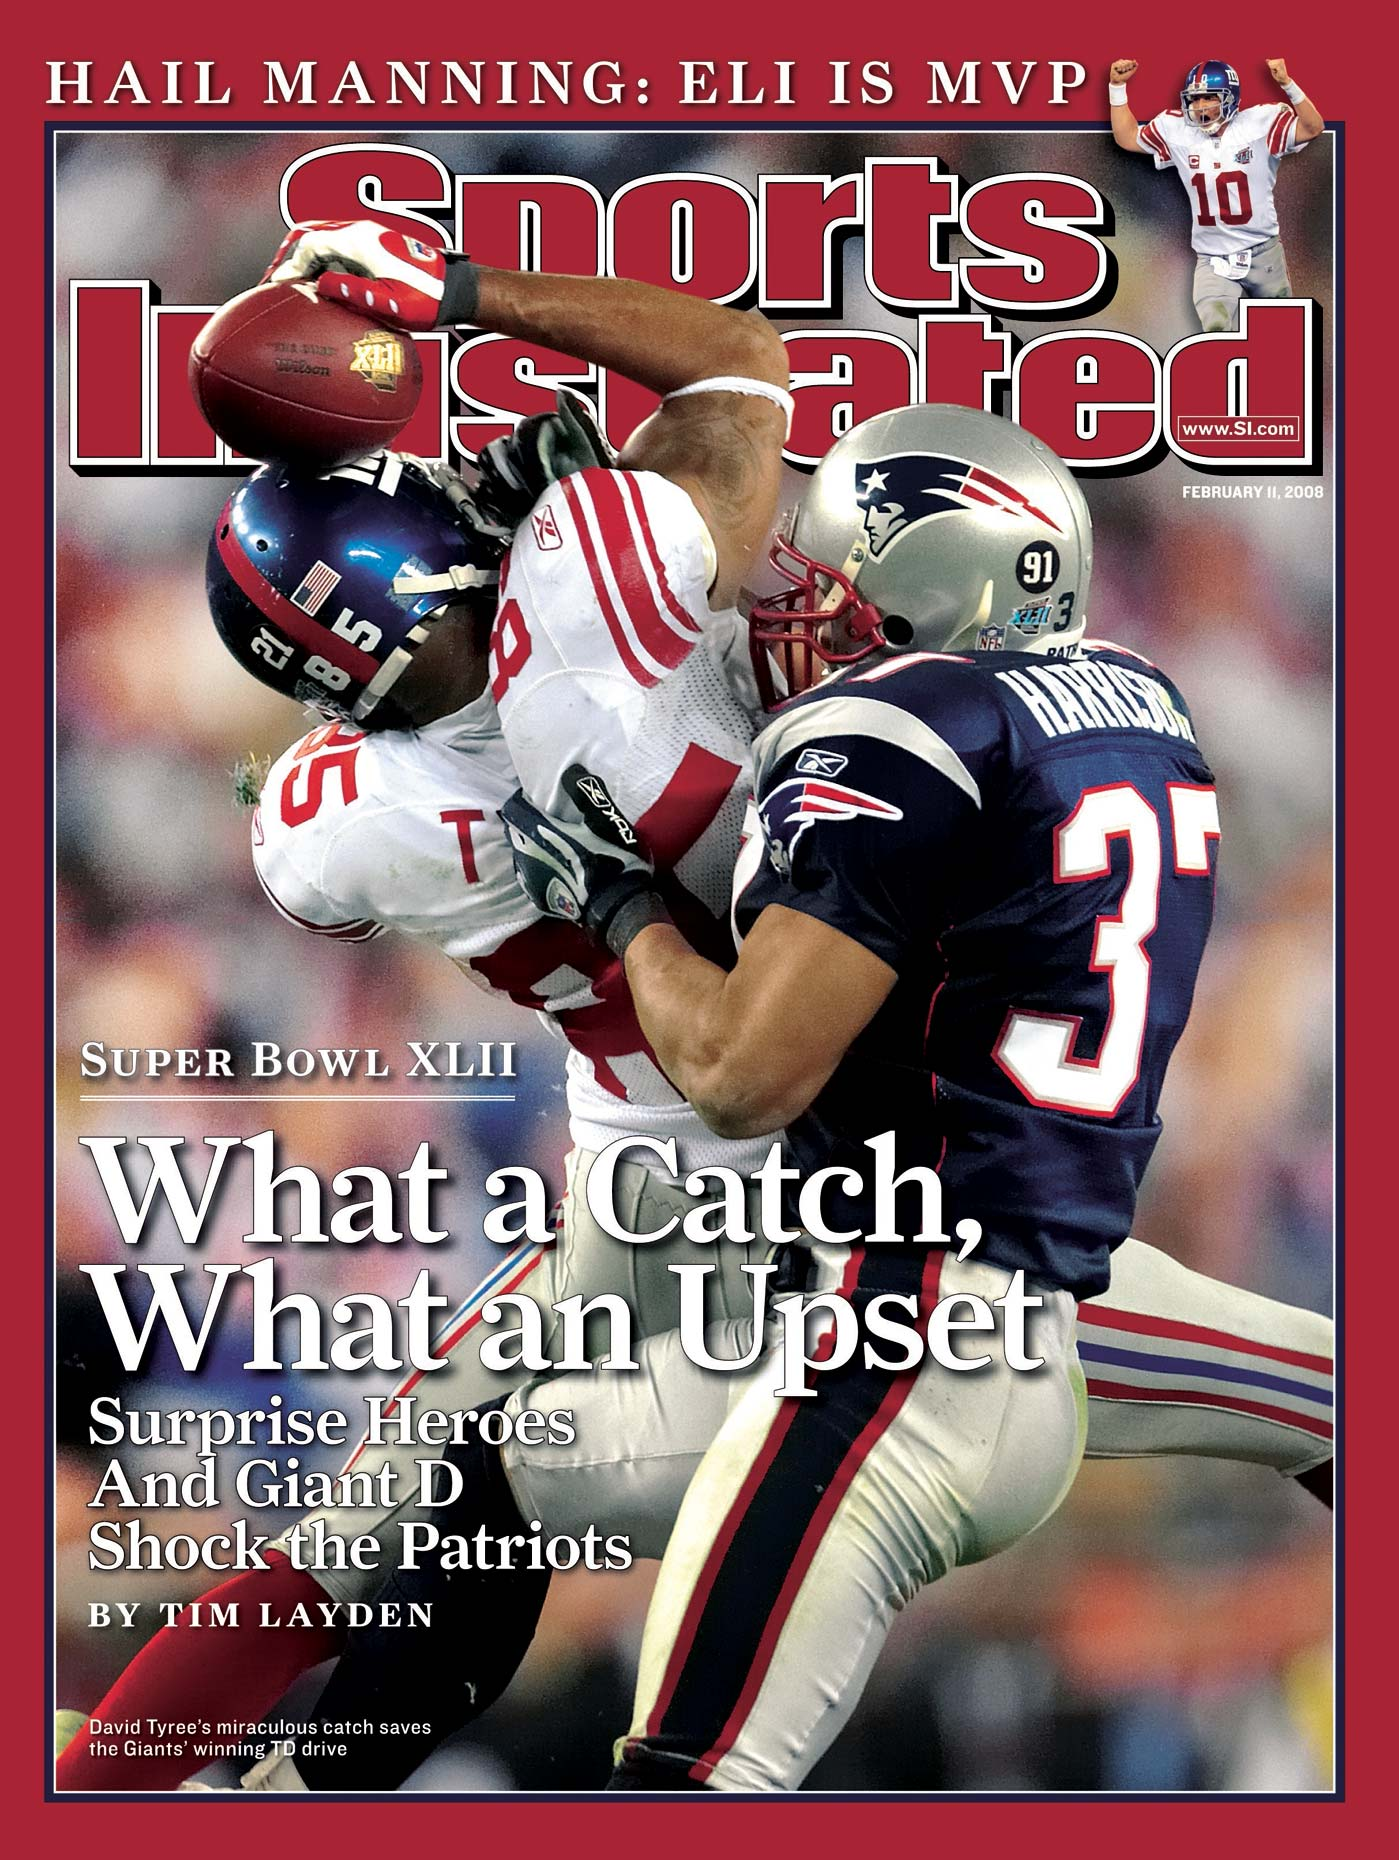 David Tyree of the New York Giants on the cover of Sports Illustrated.